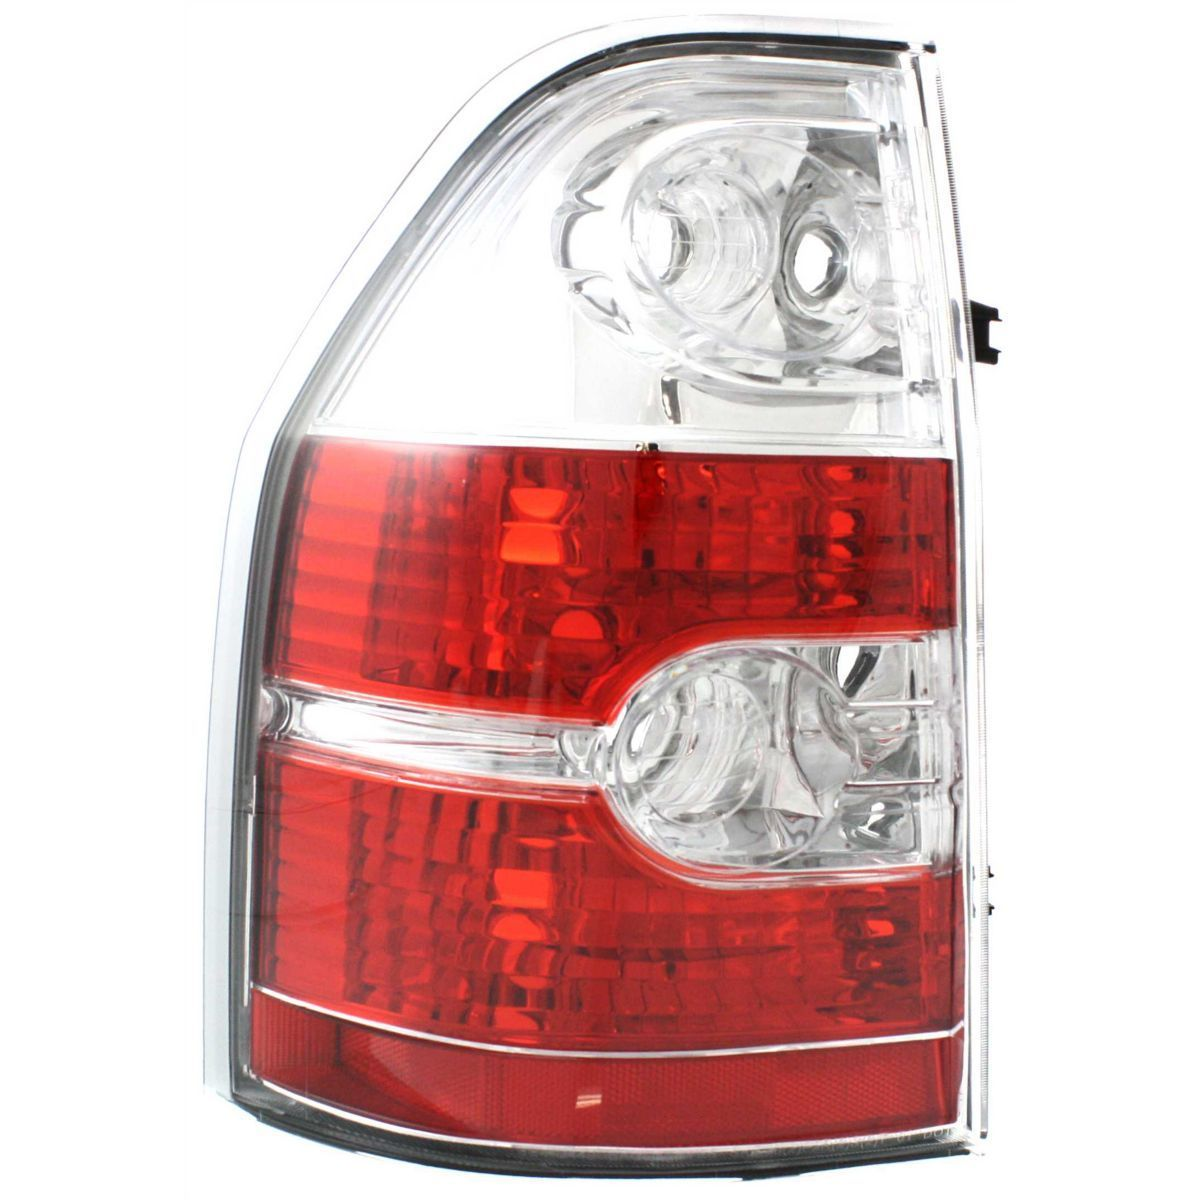 <B> New Tail Light Assembly Driver Side Fits 2004-2006 Acura MDX AC2800110 33551S3VA11  </B>